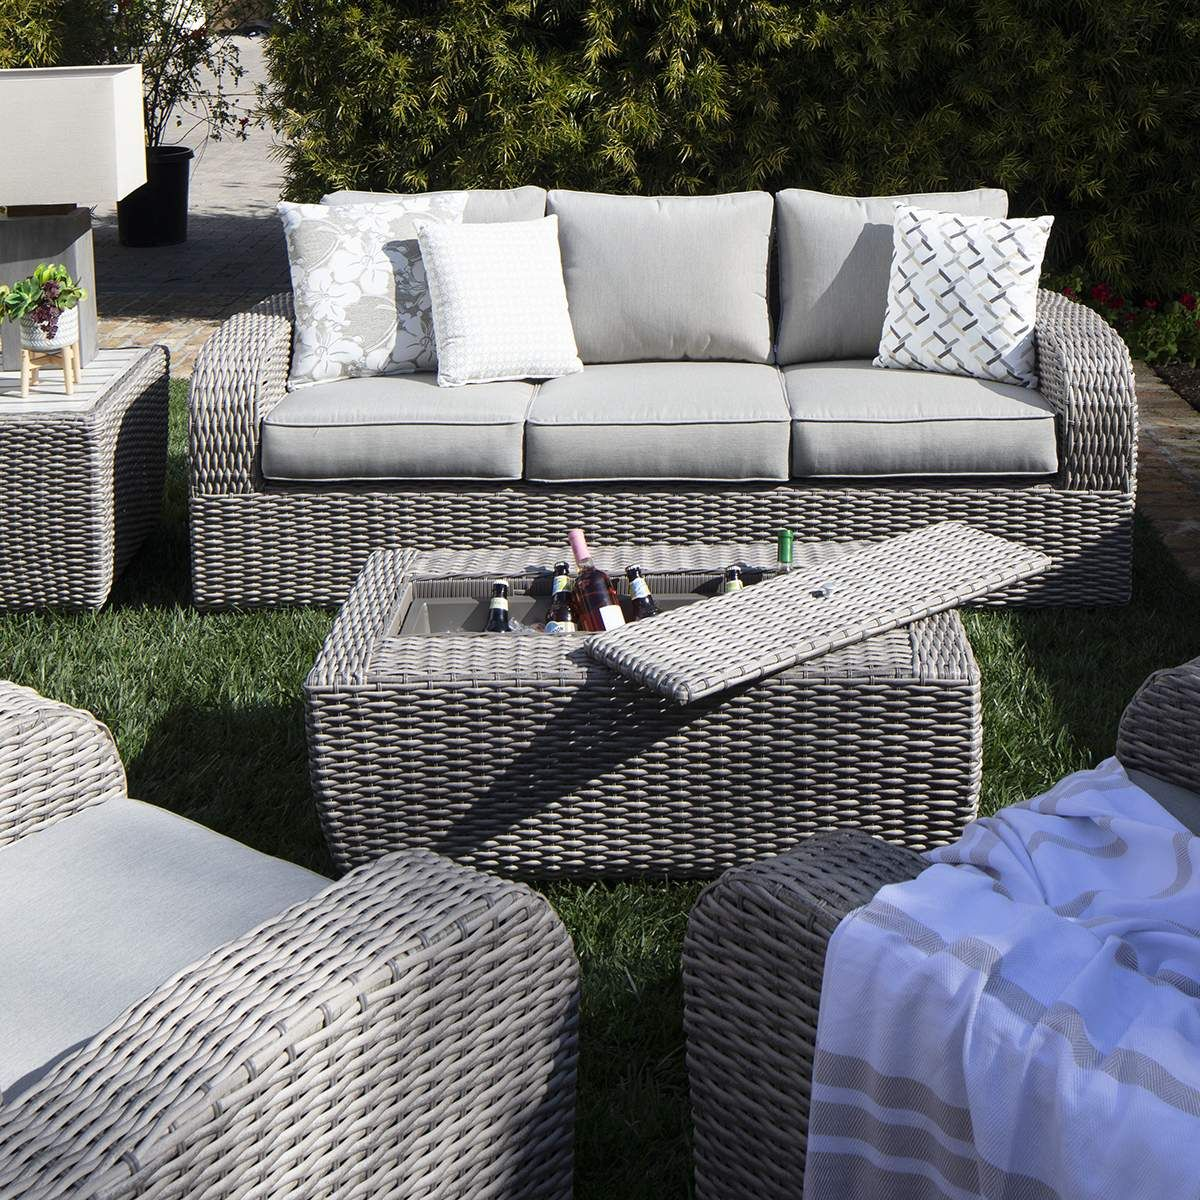 grey outdoor wicker furniture set with